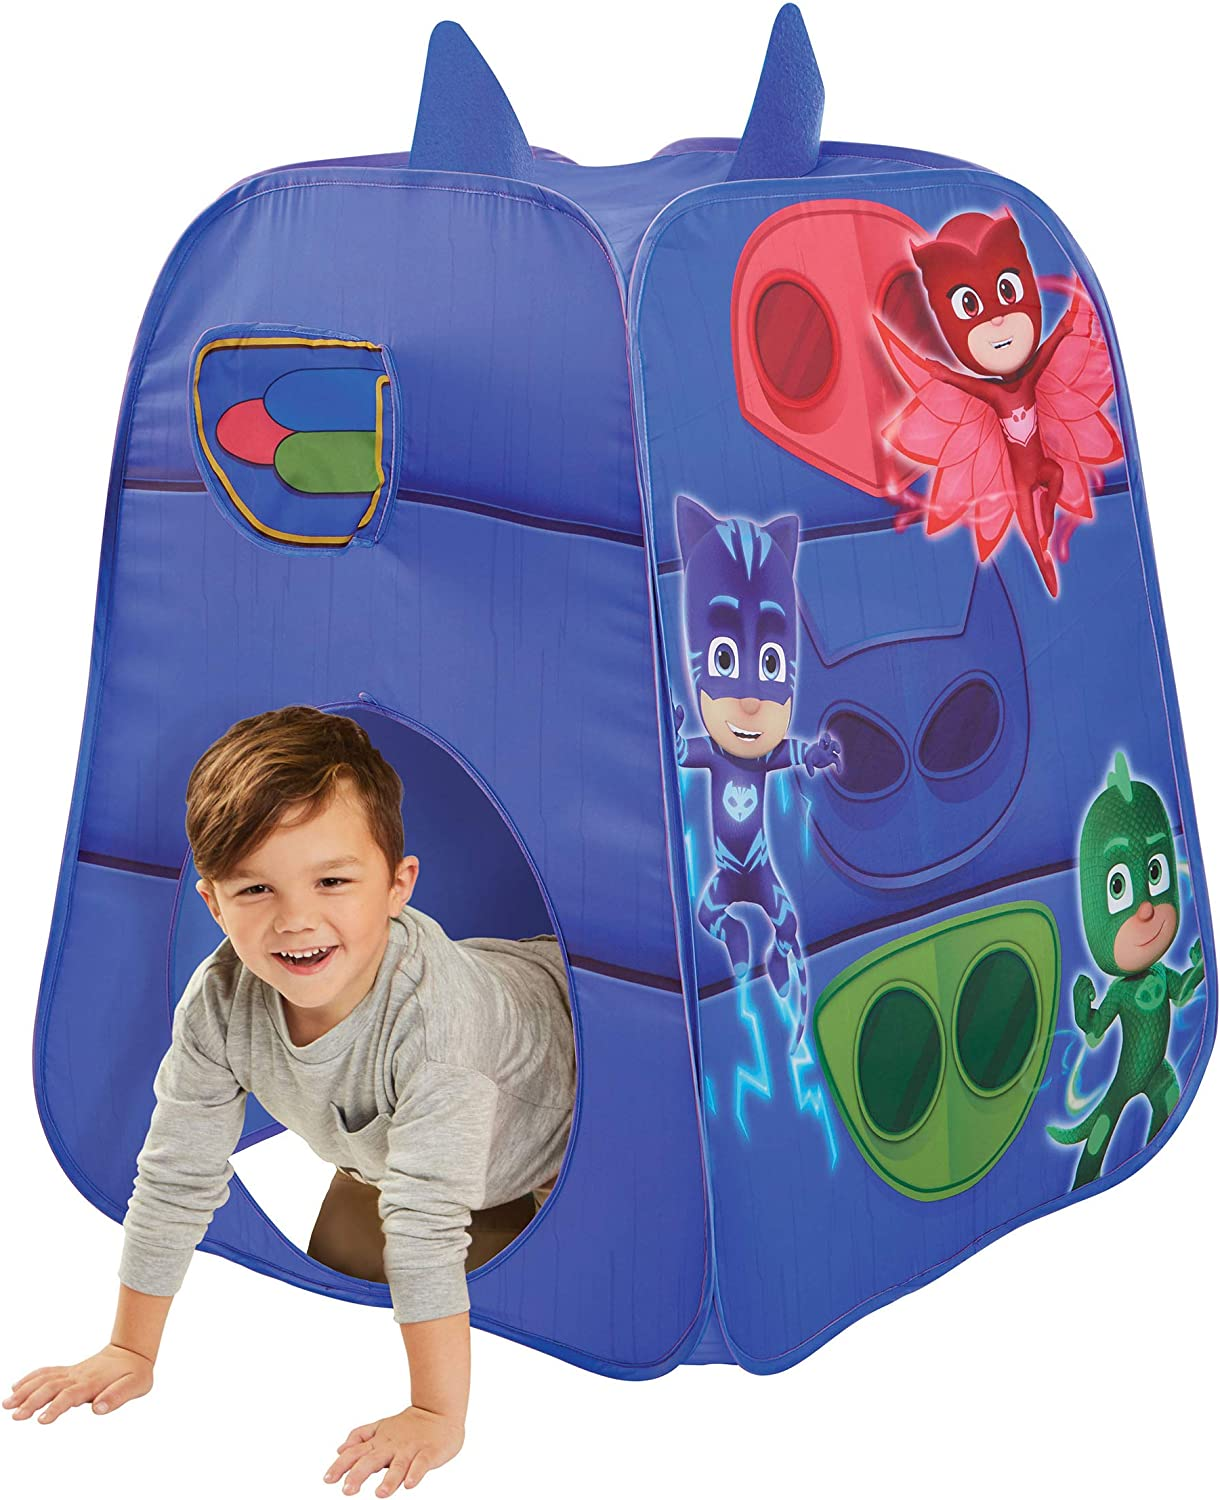 PJ Masks Max 48% OFF Kids Pop Up Limited price sale Tent for Children's Playtent Playhouse - In